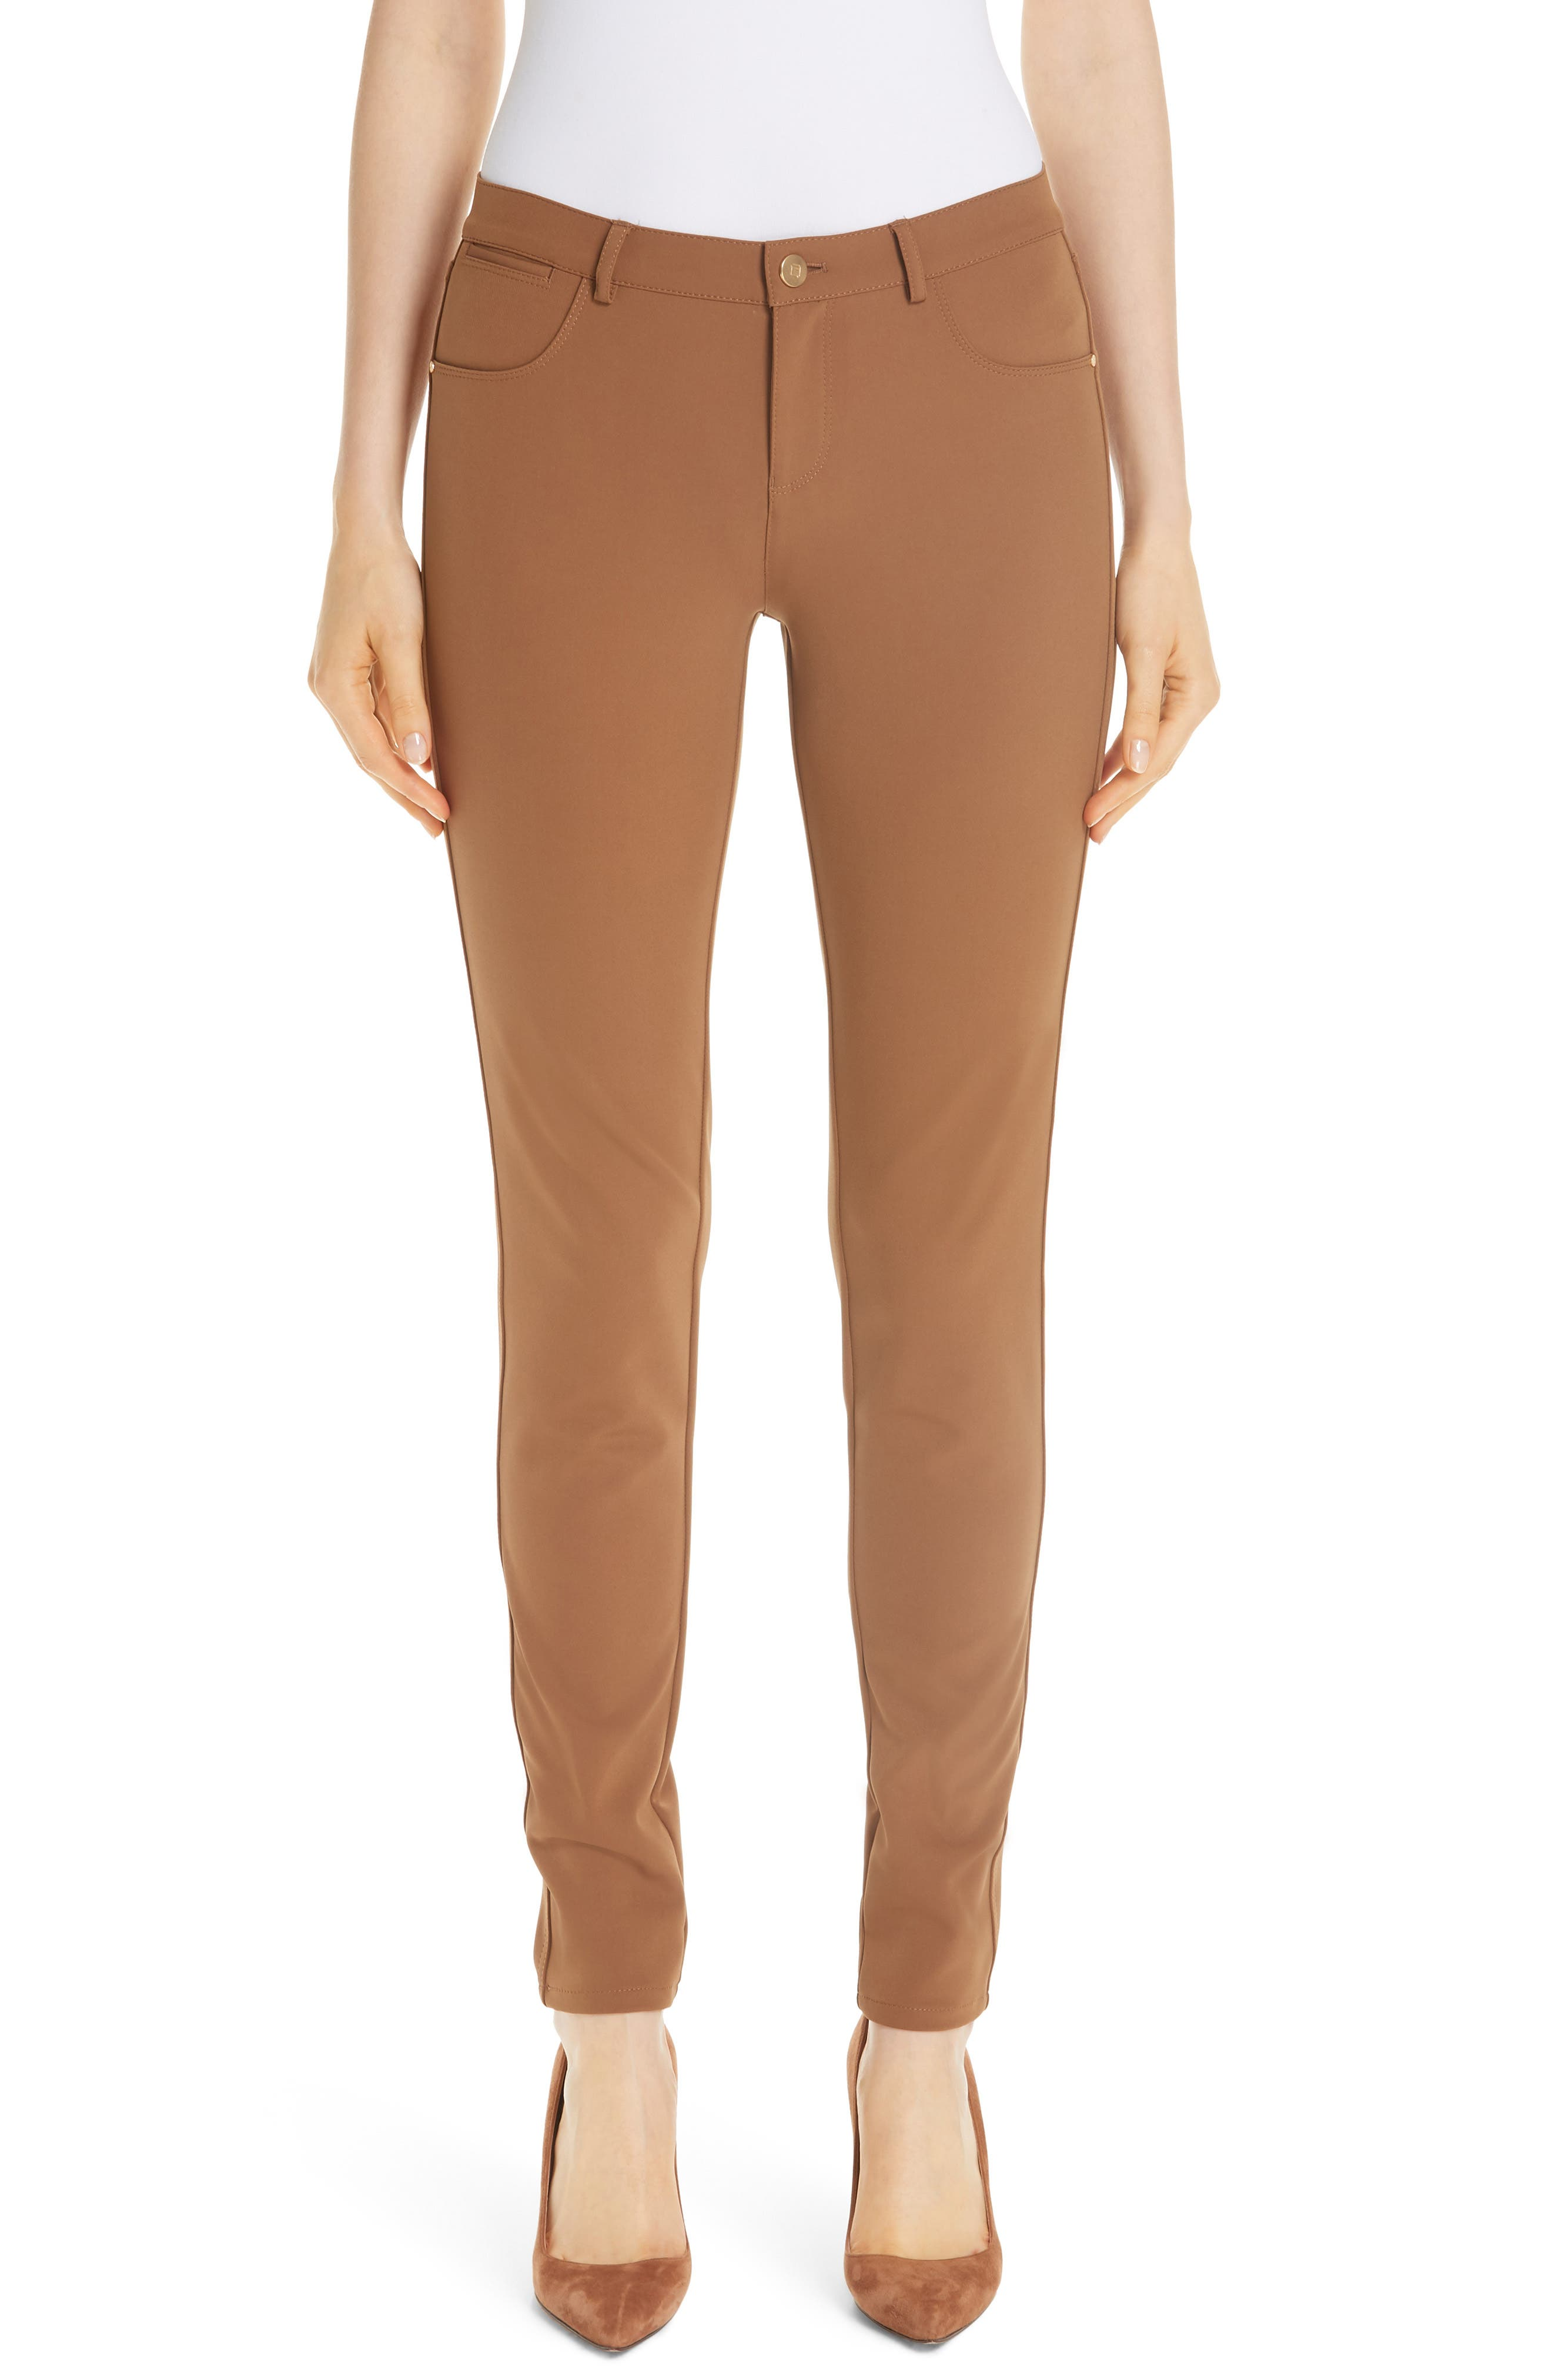 Mercer Acclaimed Stretch Skinny Pants,                             Main thumbnail 1, color,                             MAPLE